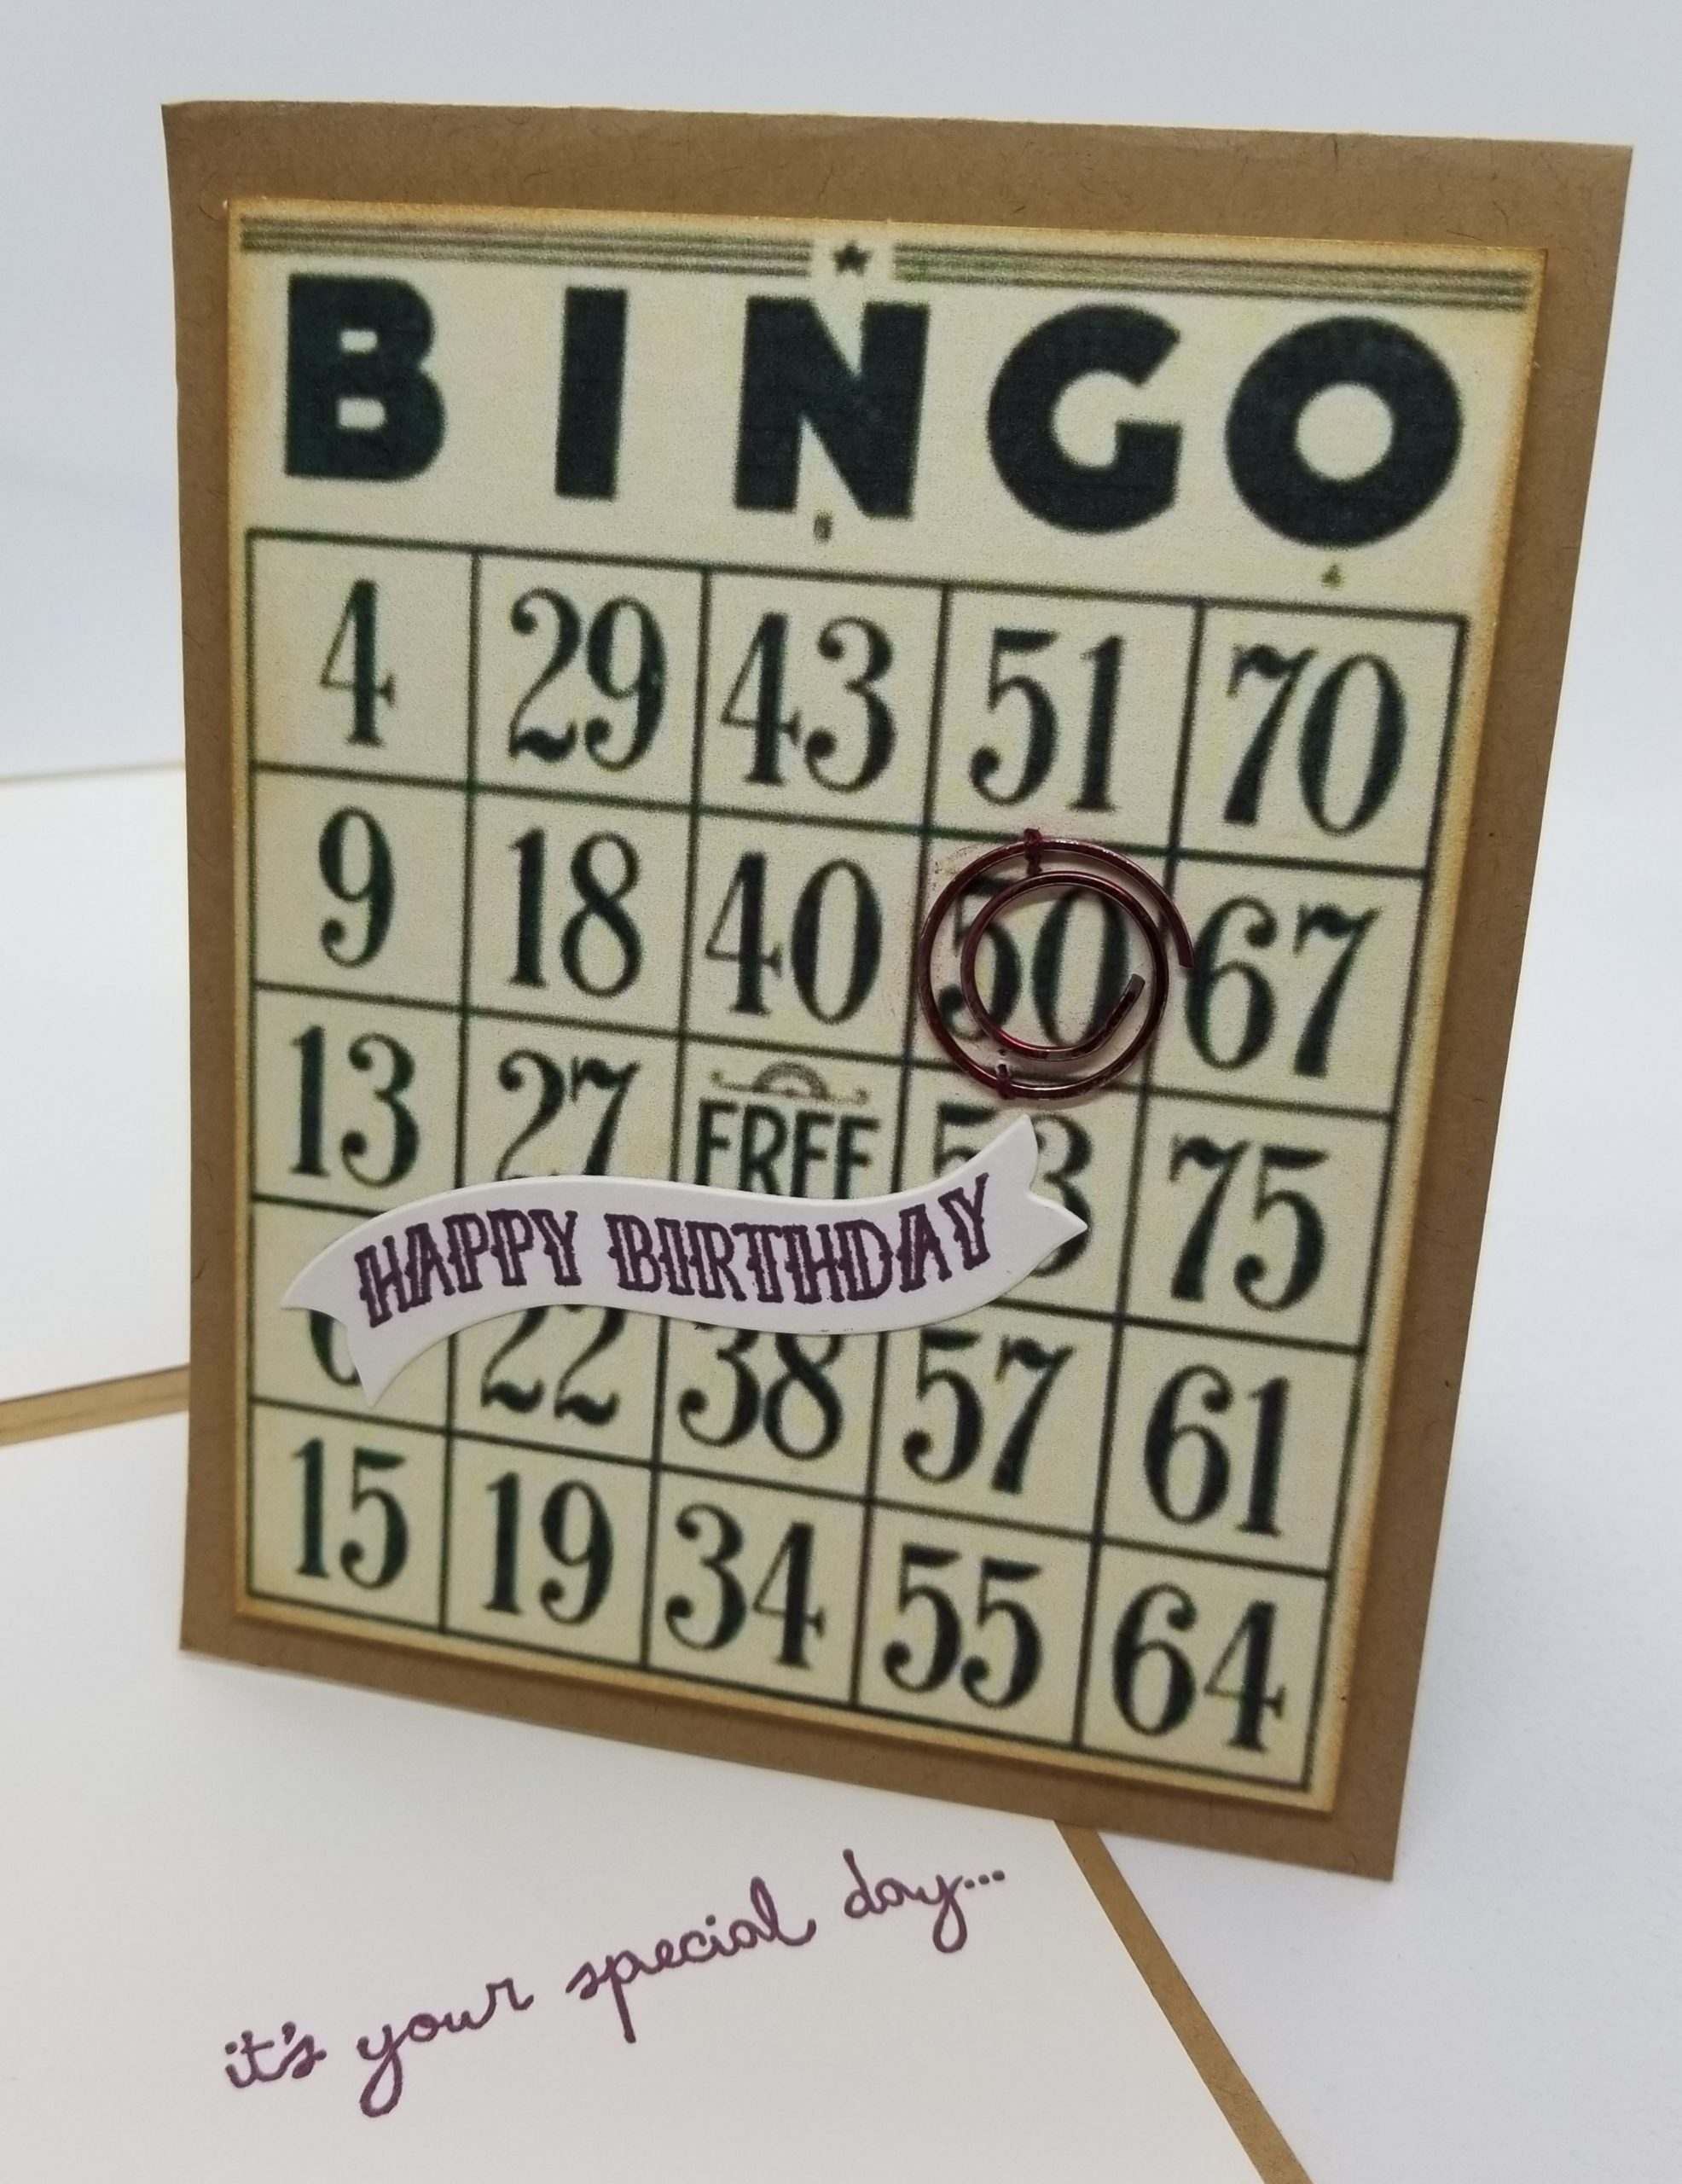 Bingo Happy Birthday Card Using Vintage Bingo Card Off